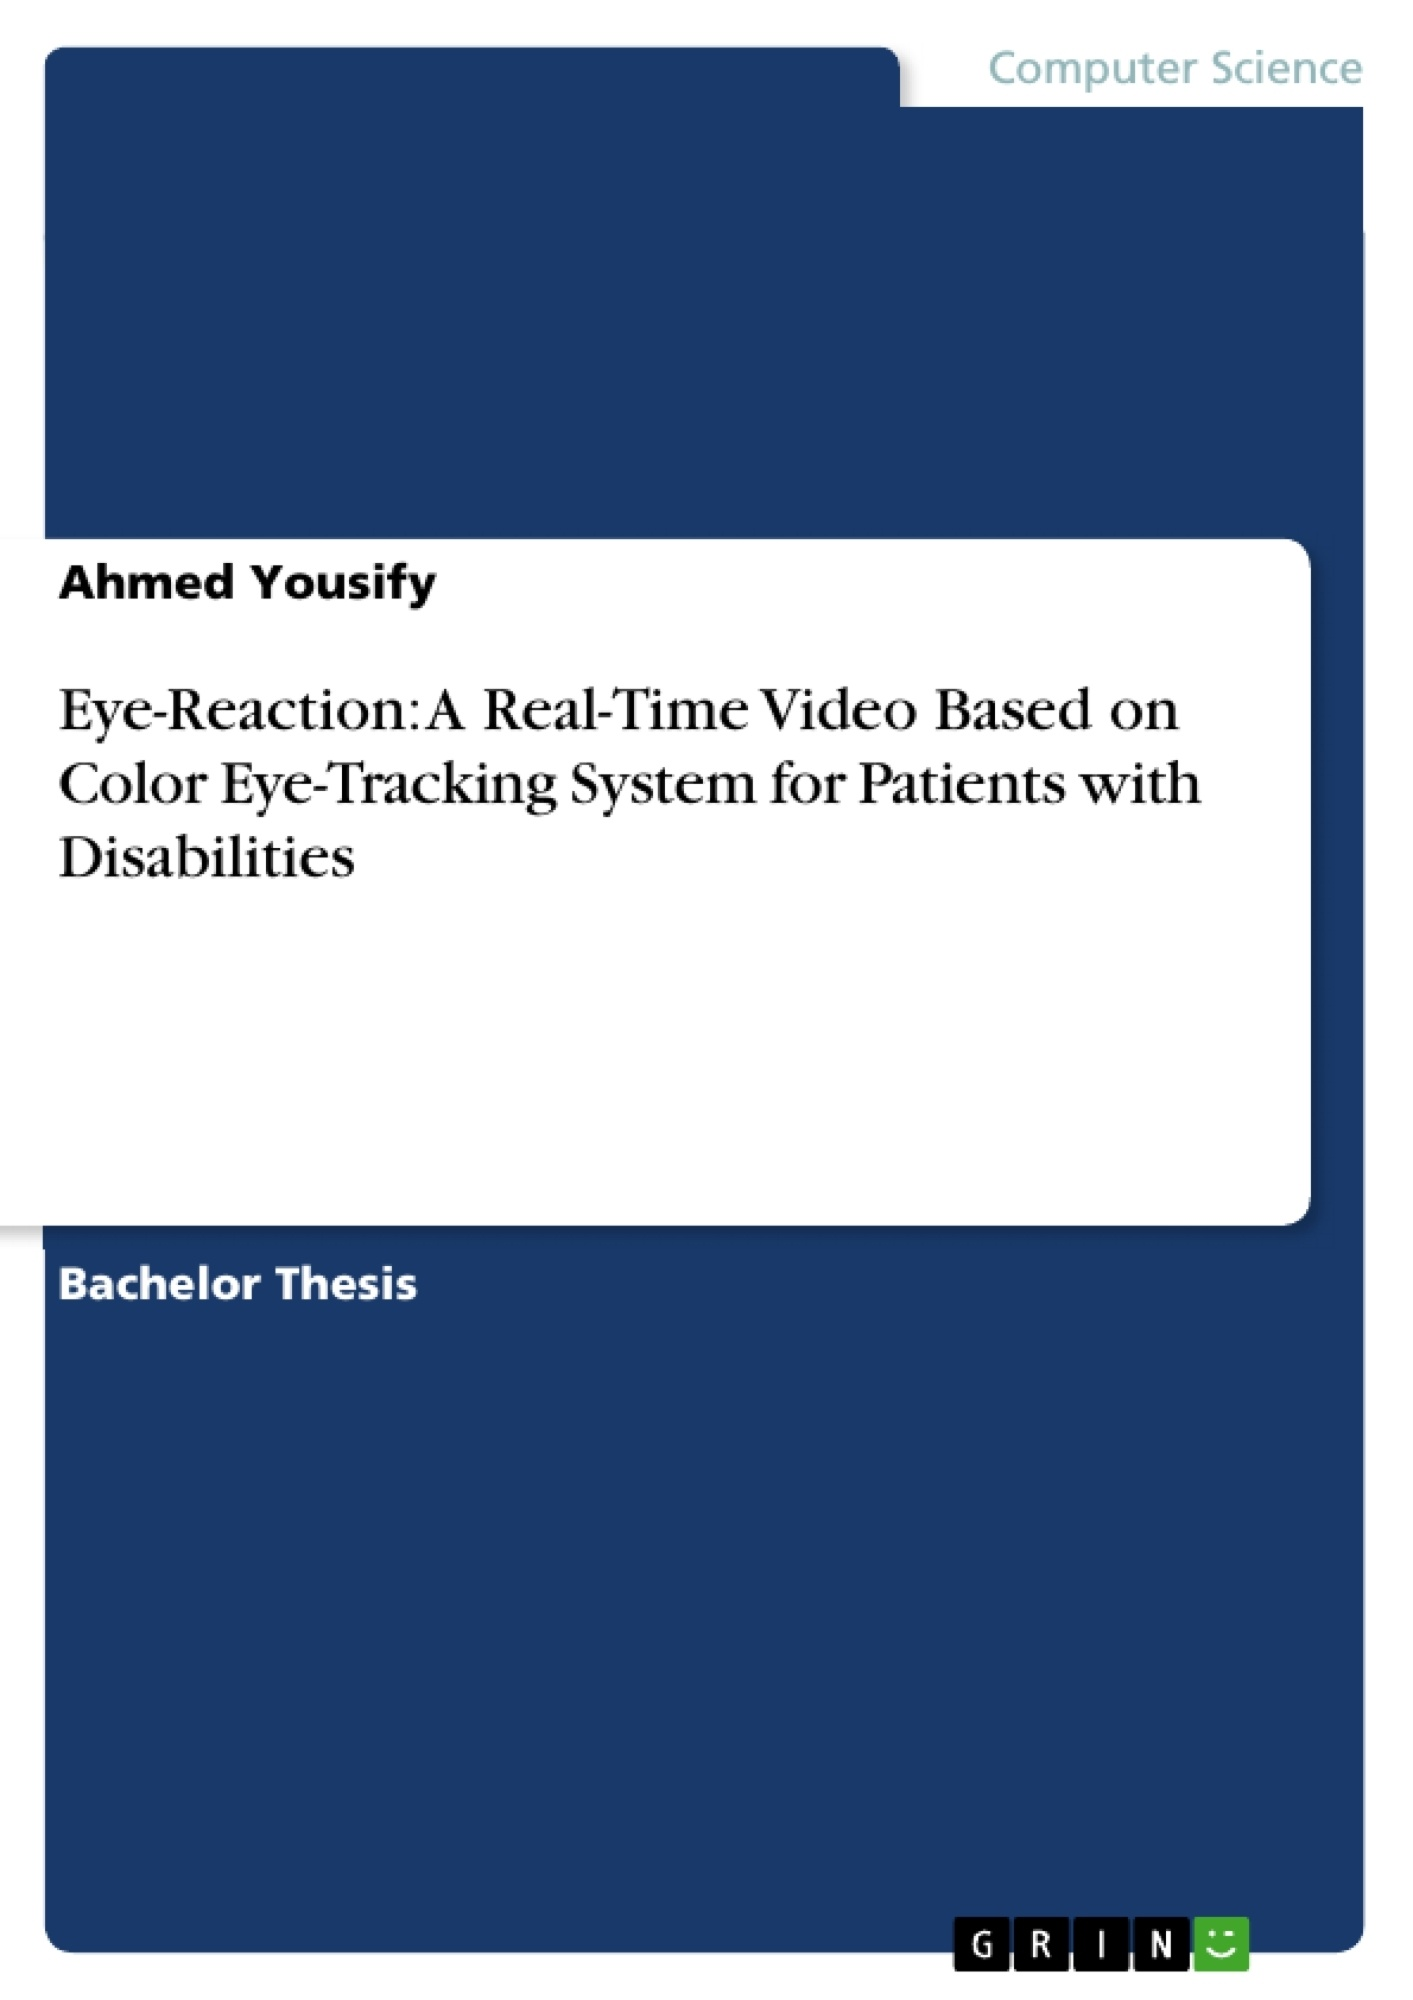 GRIN - Eye-Reaction: A Real-Time Video Based on Color Eye-Tracking System  for Patients with Disabilities